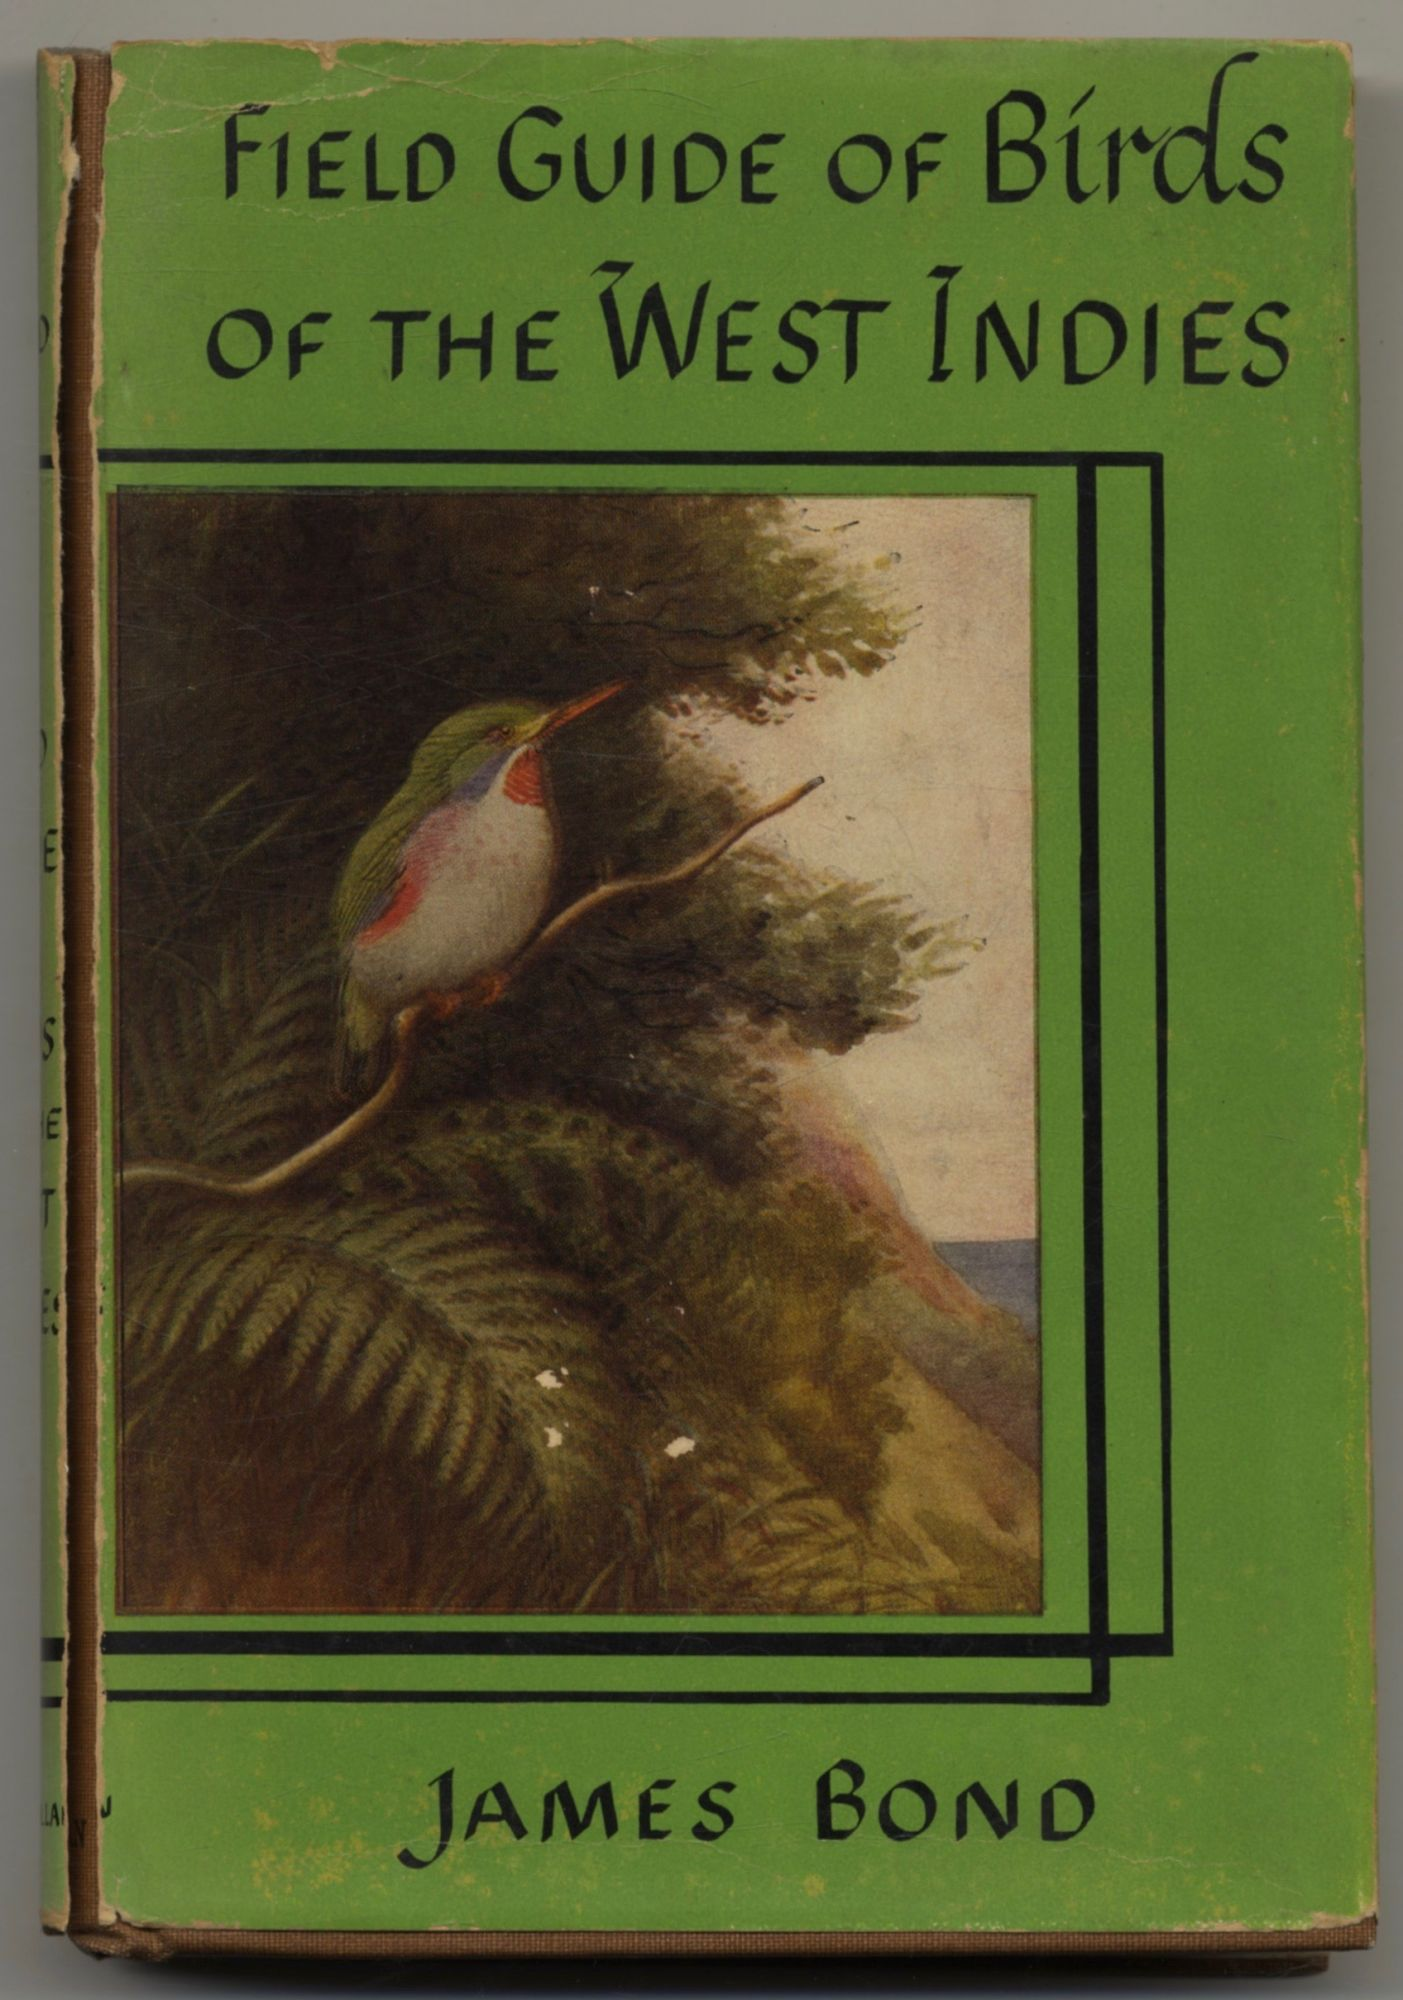 The Field Guide Of Birds Of The West Indies. James Bond.